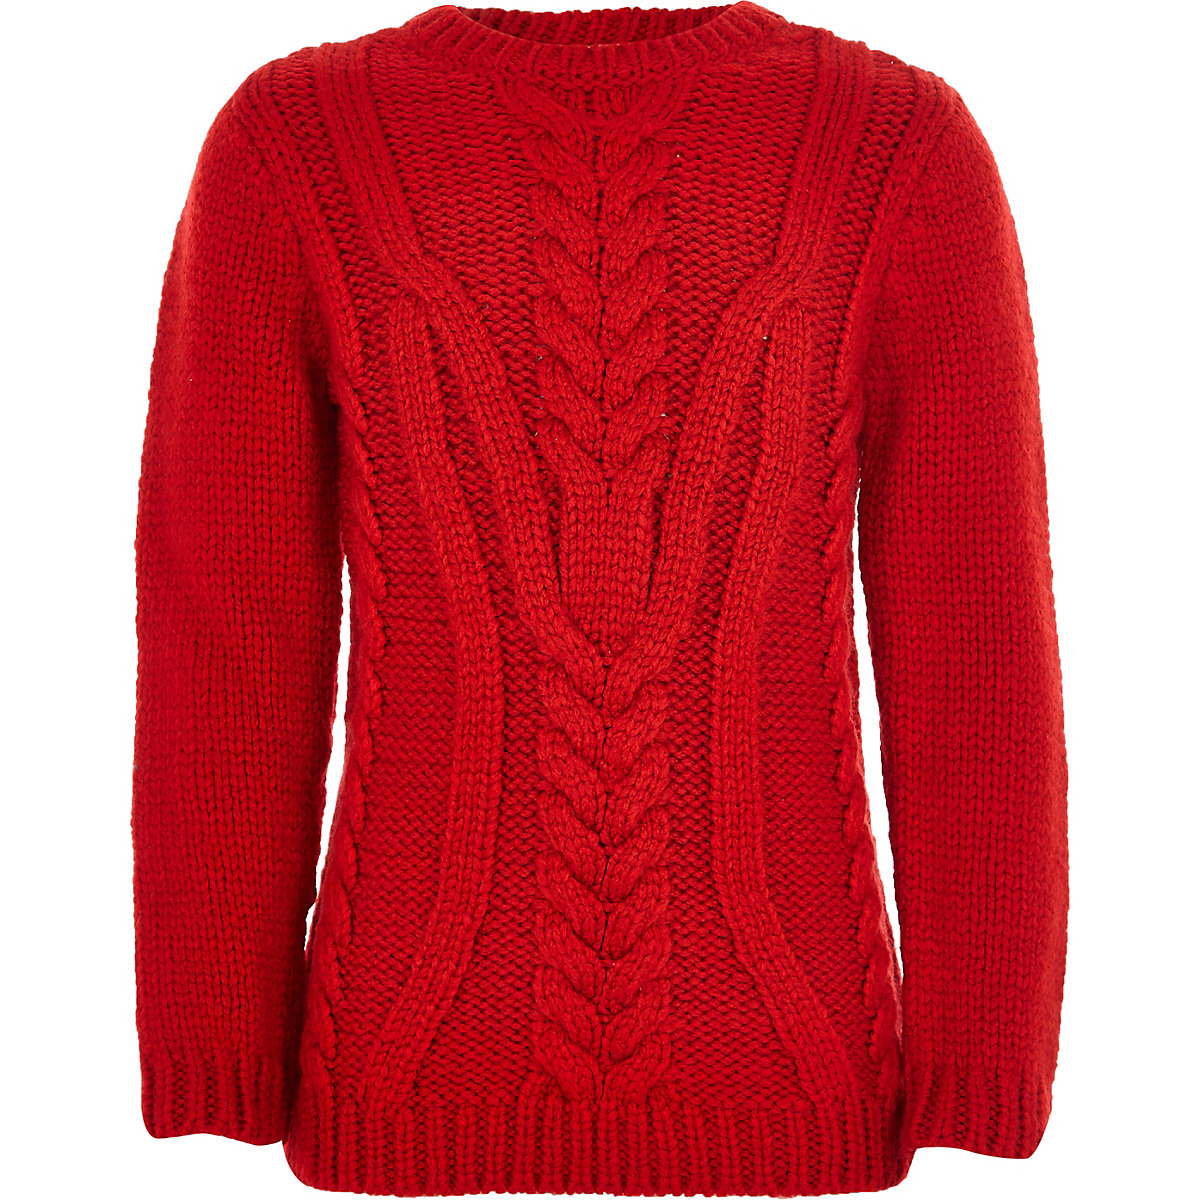 Boys red chunky cable knit sweater